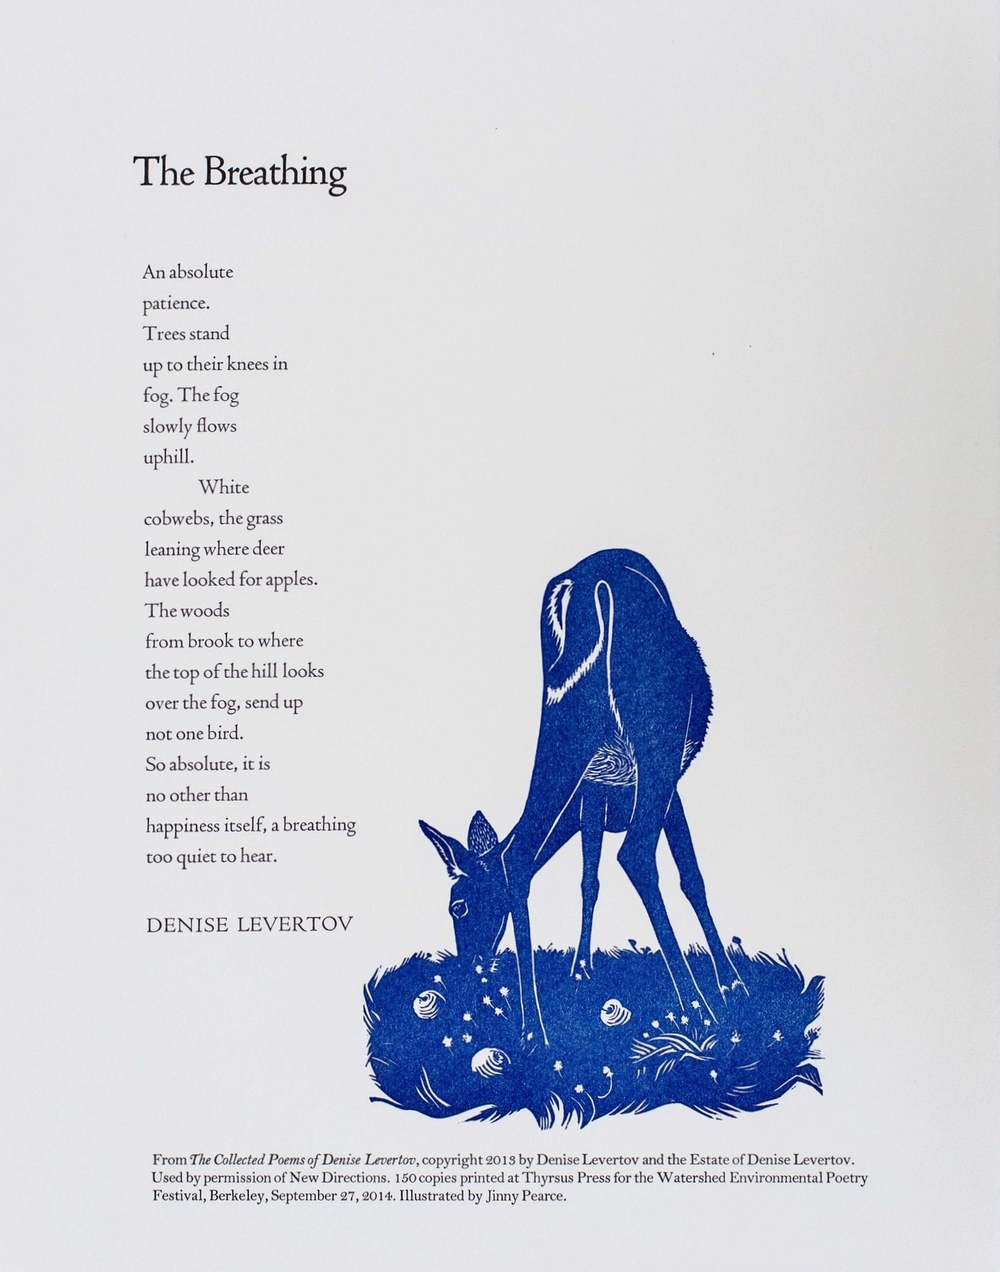 Denise Levertov, The Breathing, 2014